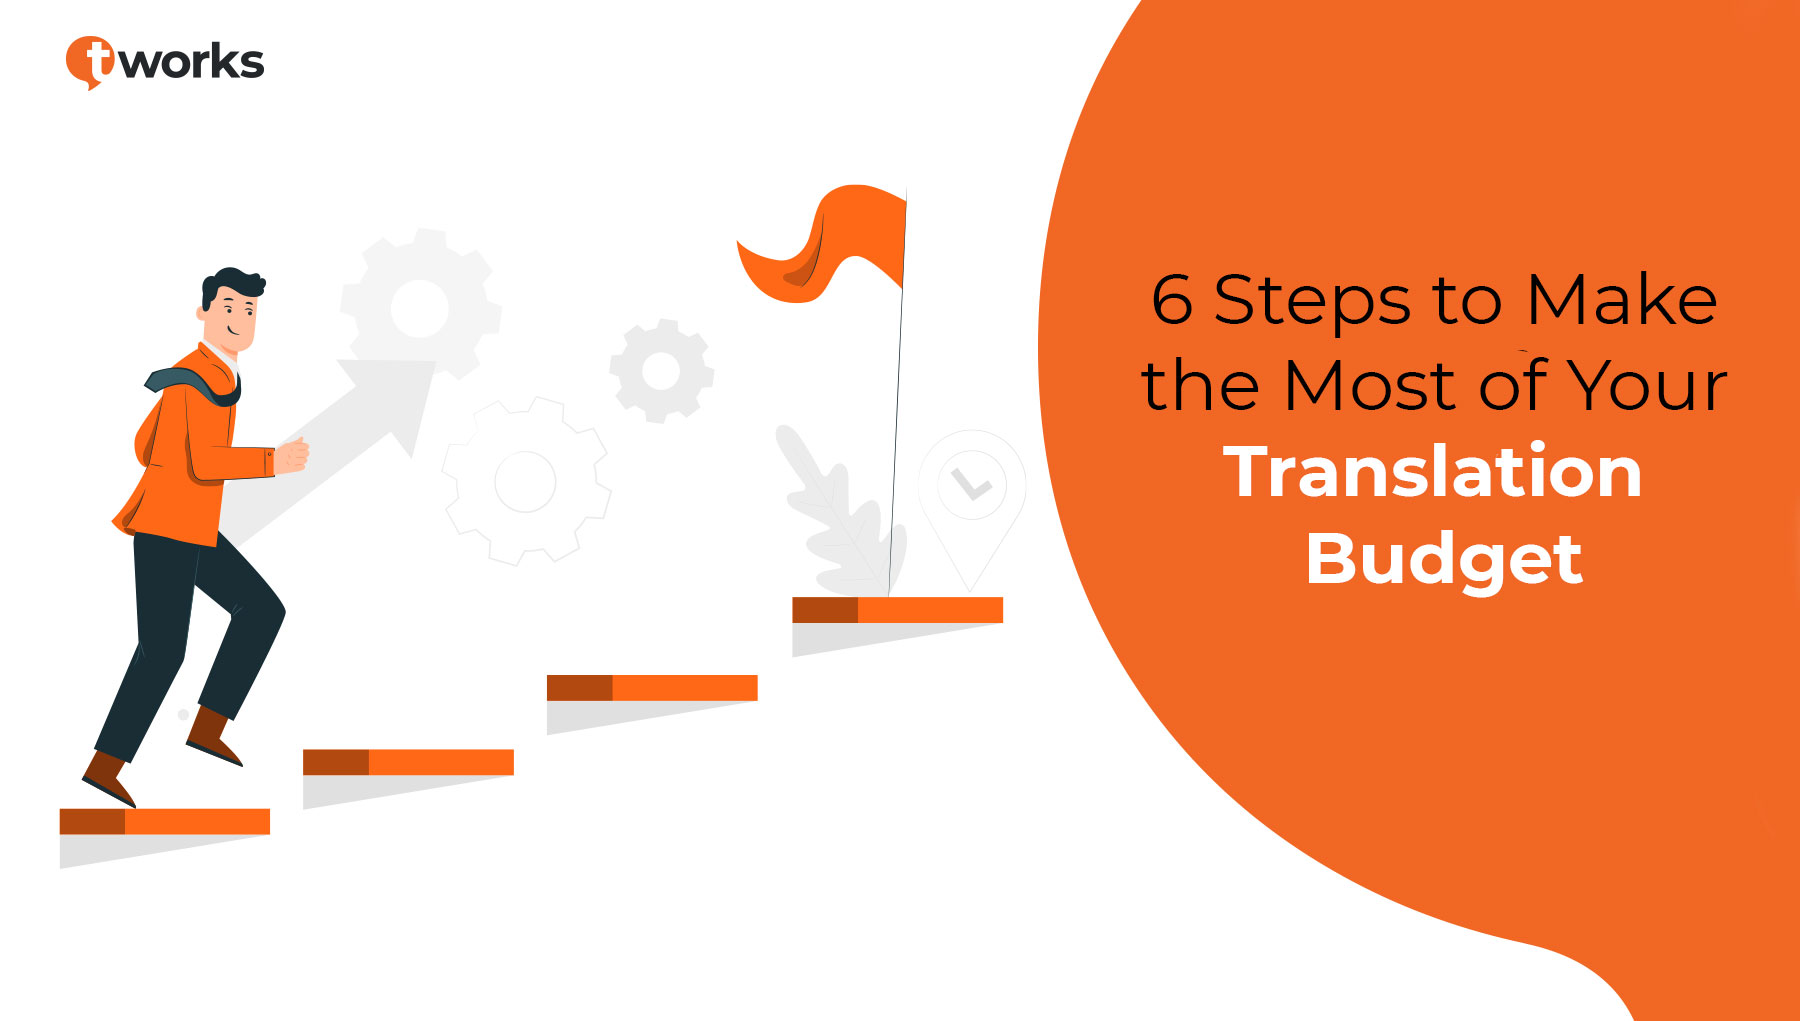 6 Steps to Make the Most of Your Translation Budget